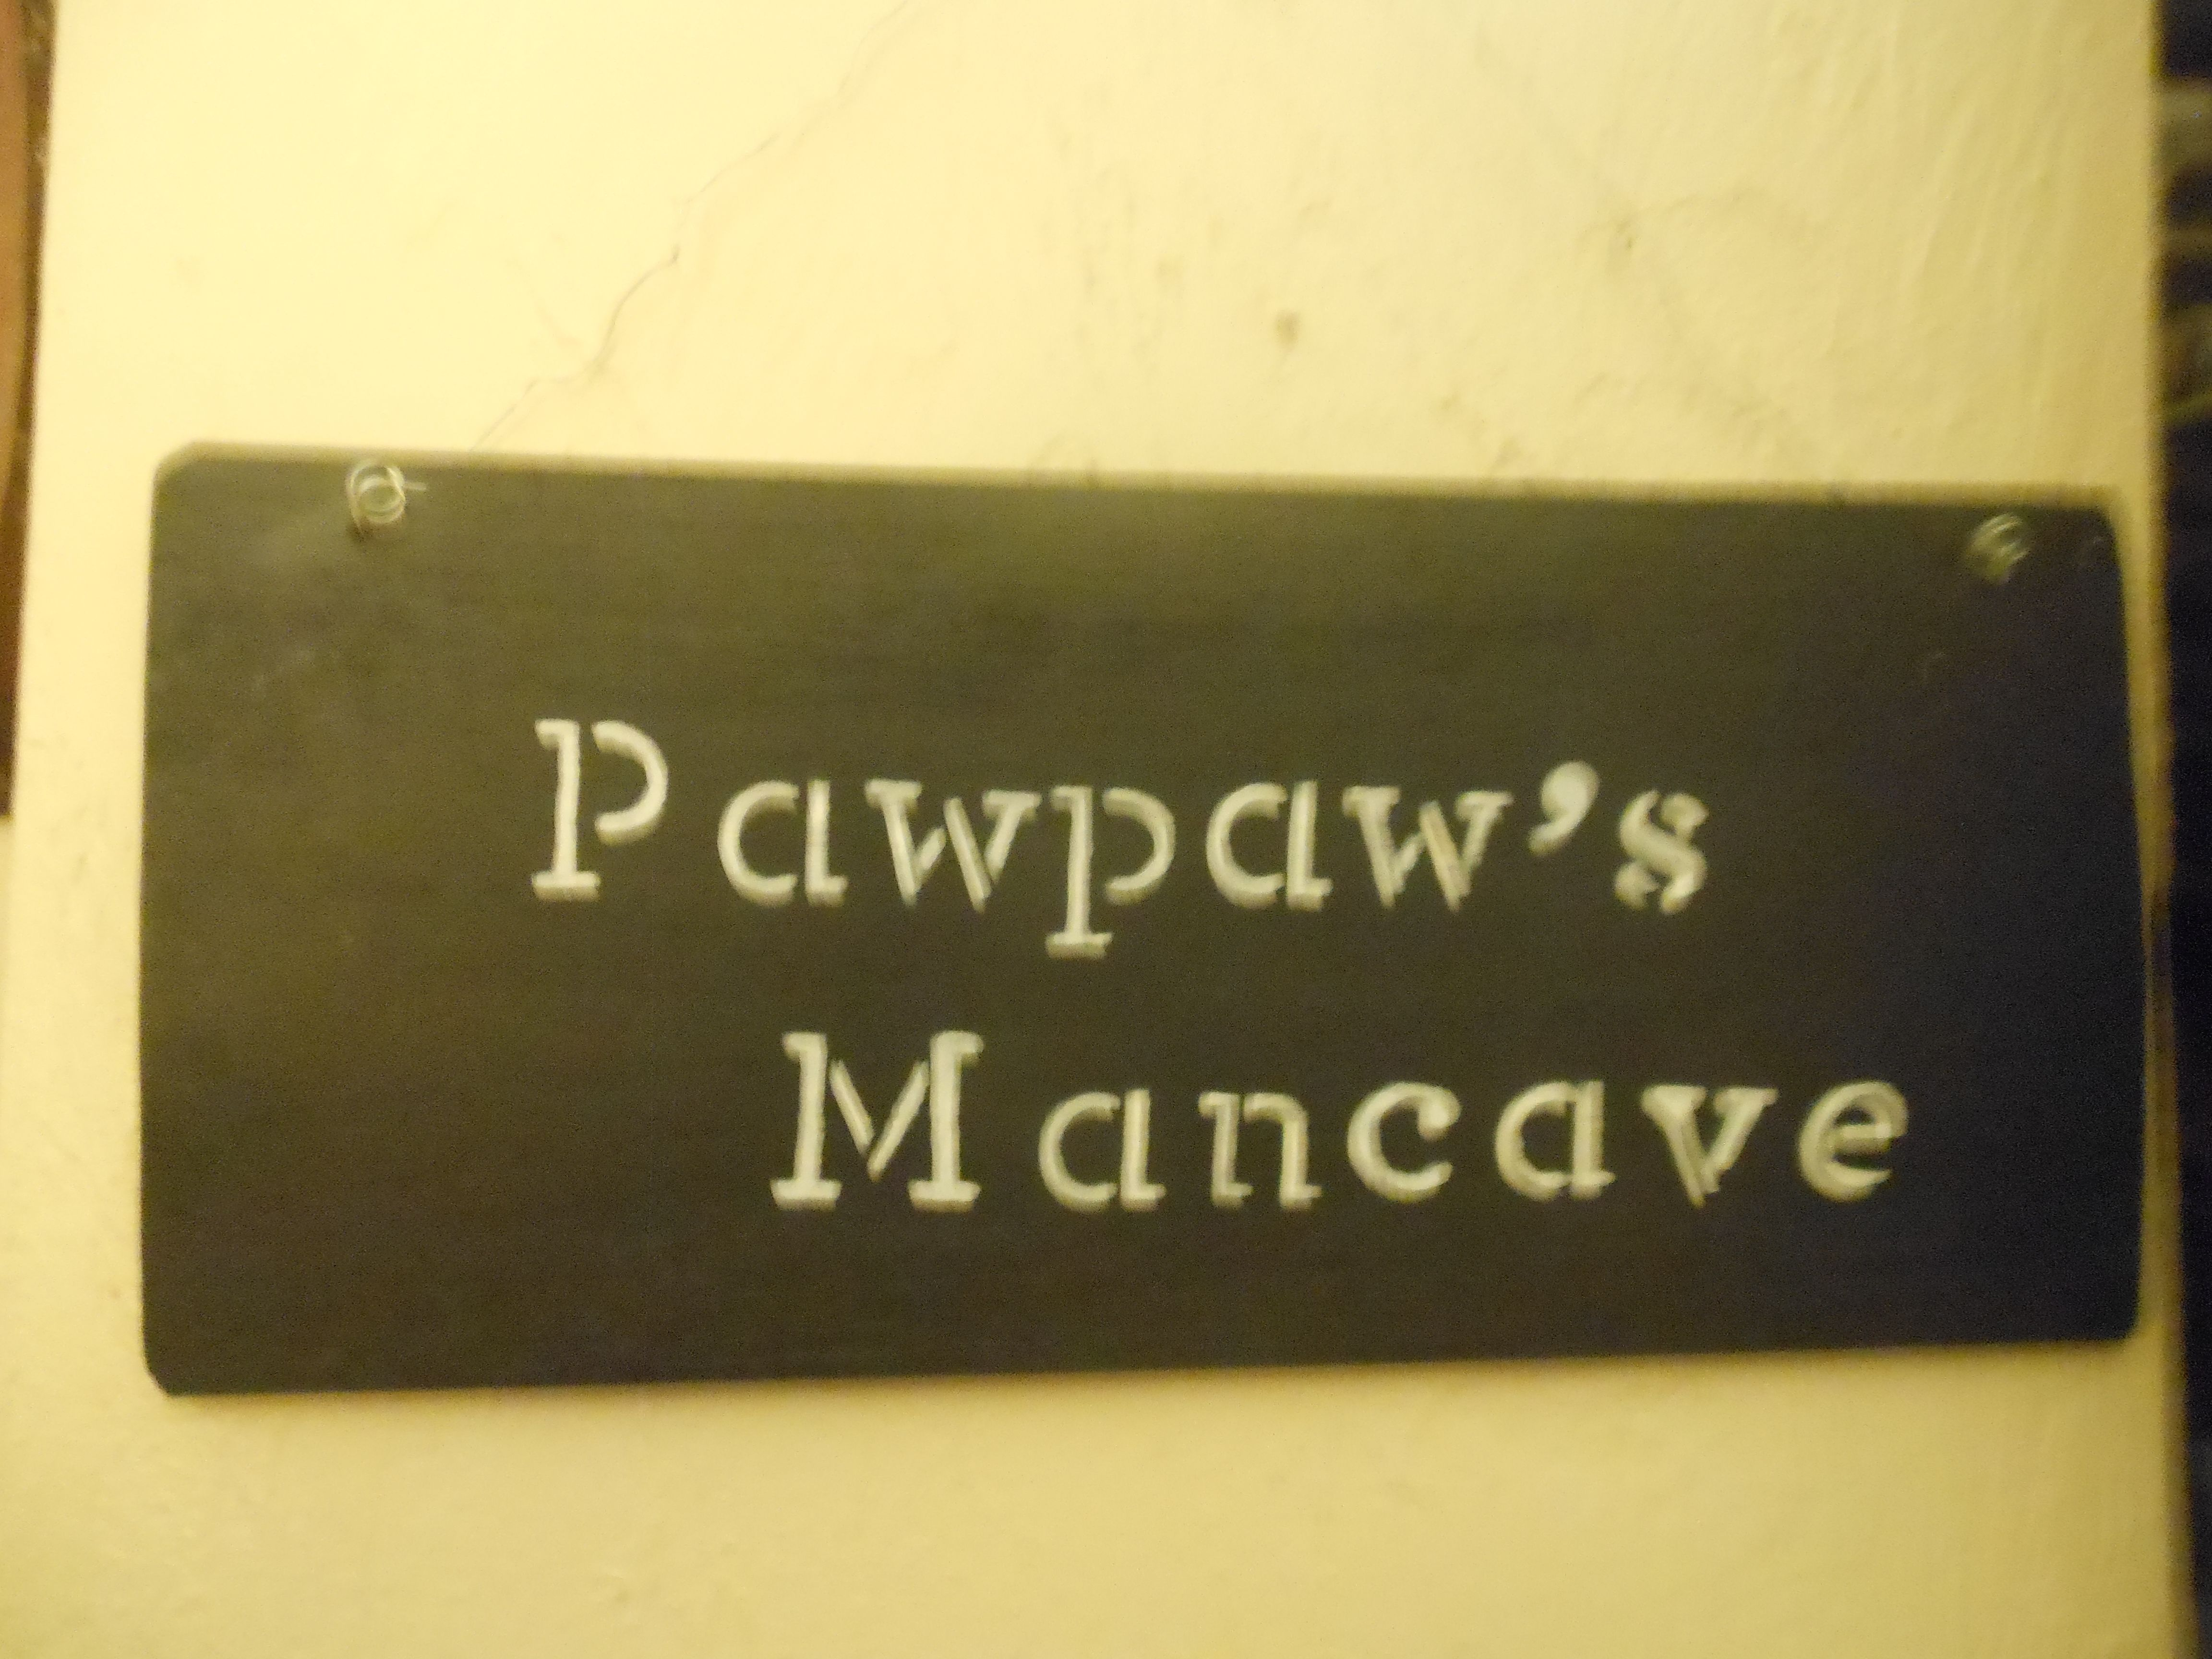 Hang this light weight birch sign on PawPaw's door-Painted black with vanilla lettering and hanging from a black cord-it shows Pawpaw's domain-Etsy n Facebook